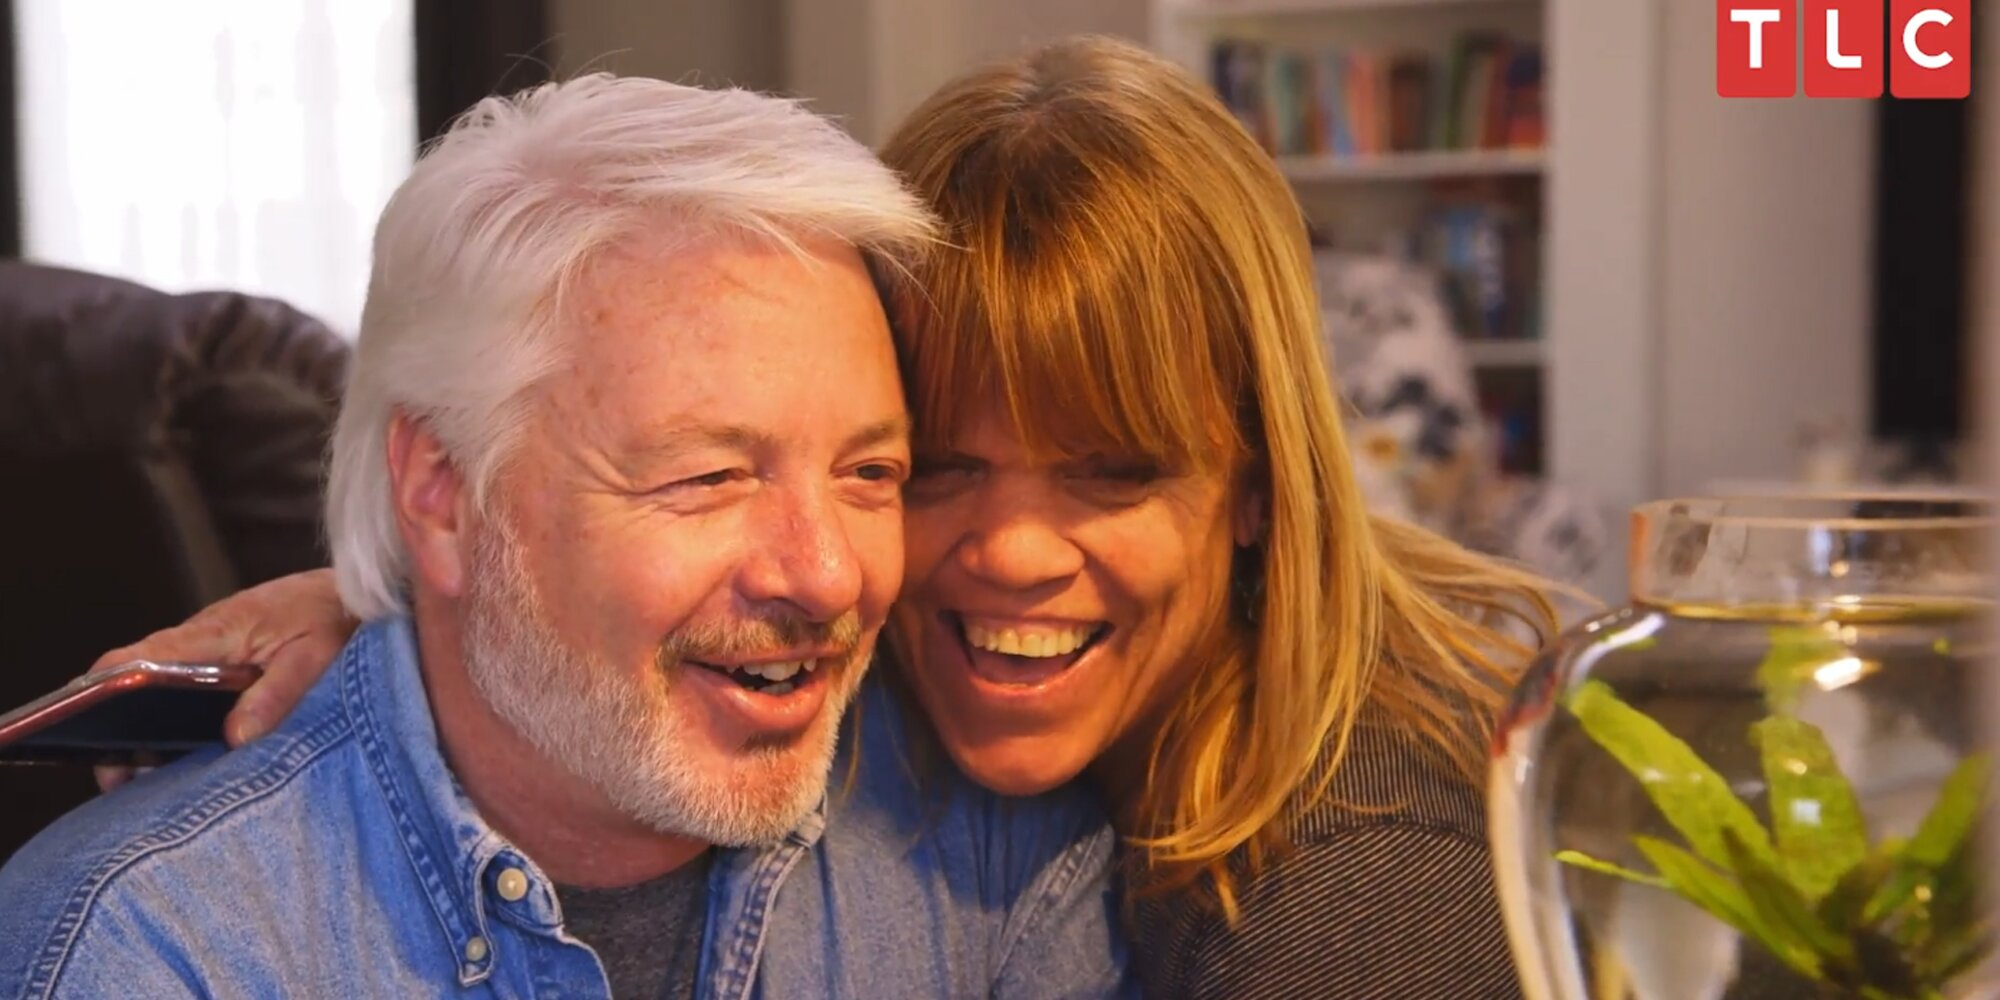 LPBW: Amy Roloff and Fiancé Chris Marek Expand Their Family with a Finned Friend